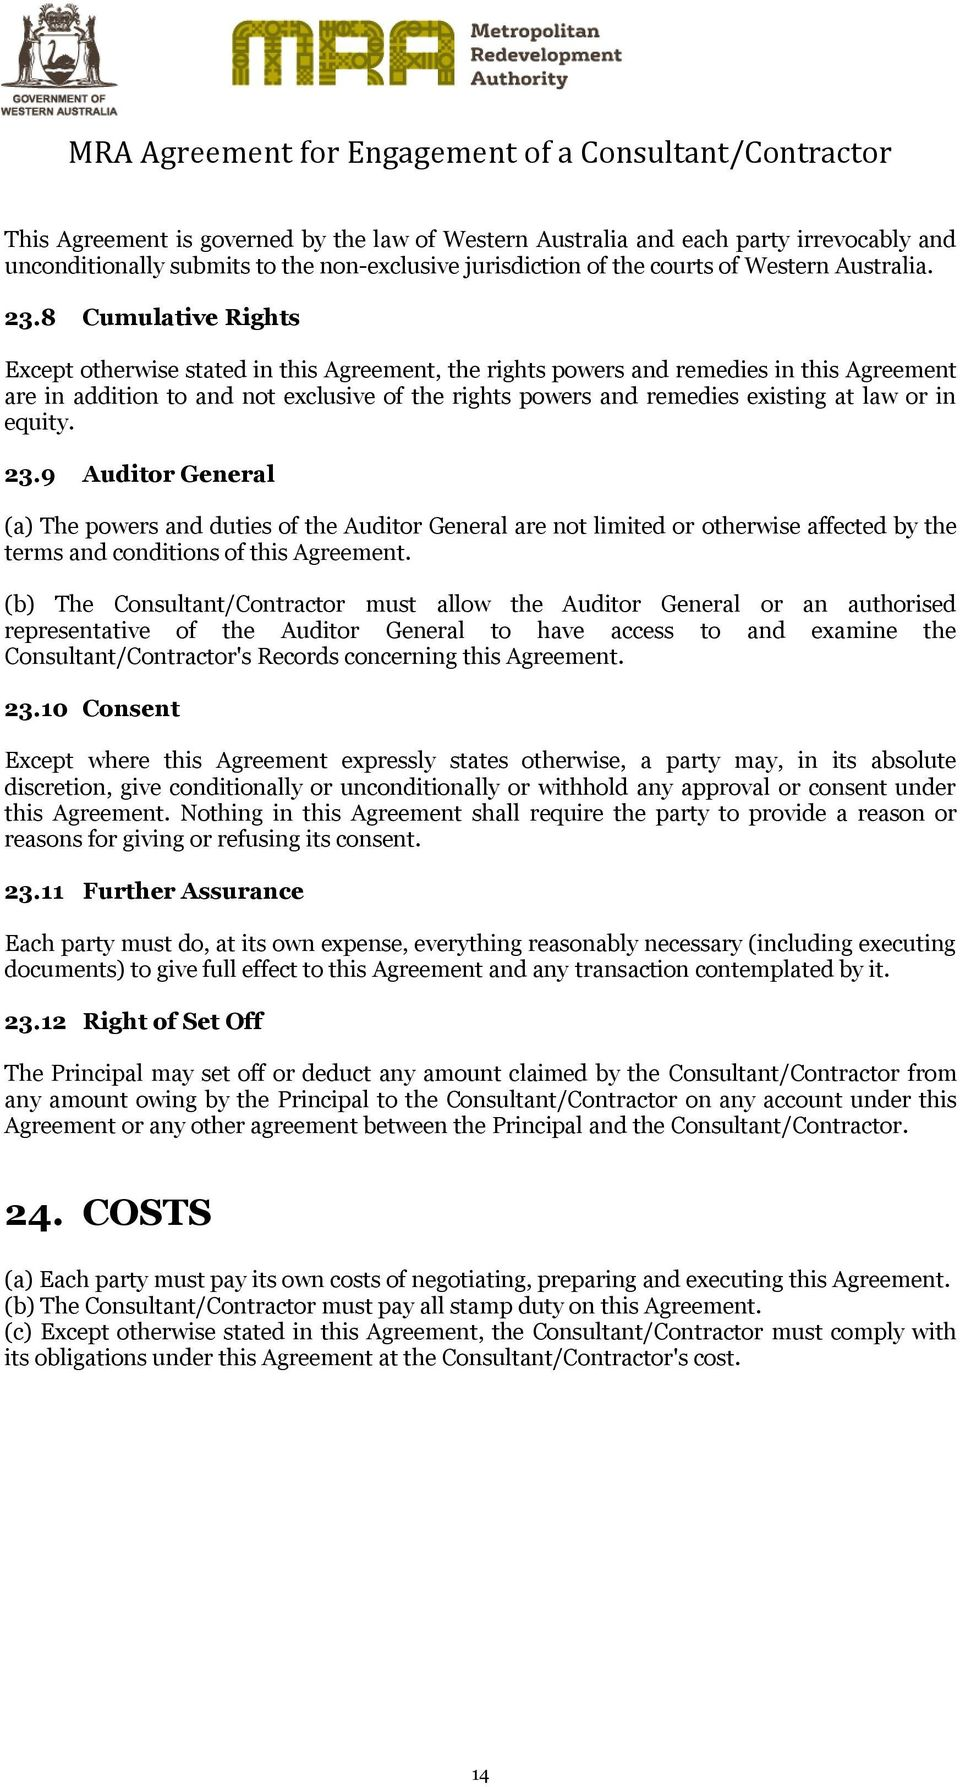 or in equity. 23.9 Auditor General (a) The powers and duties of the Auditor General are not limited or otherwise affected by the terms and conditions of this Agreement.